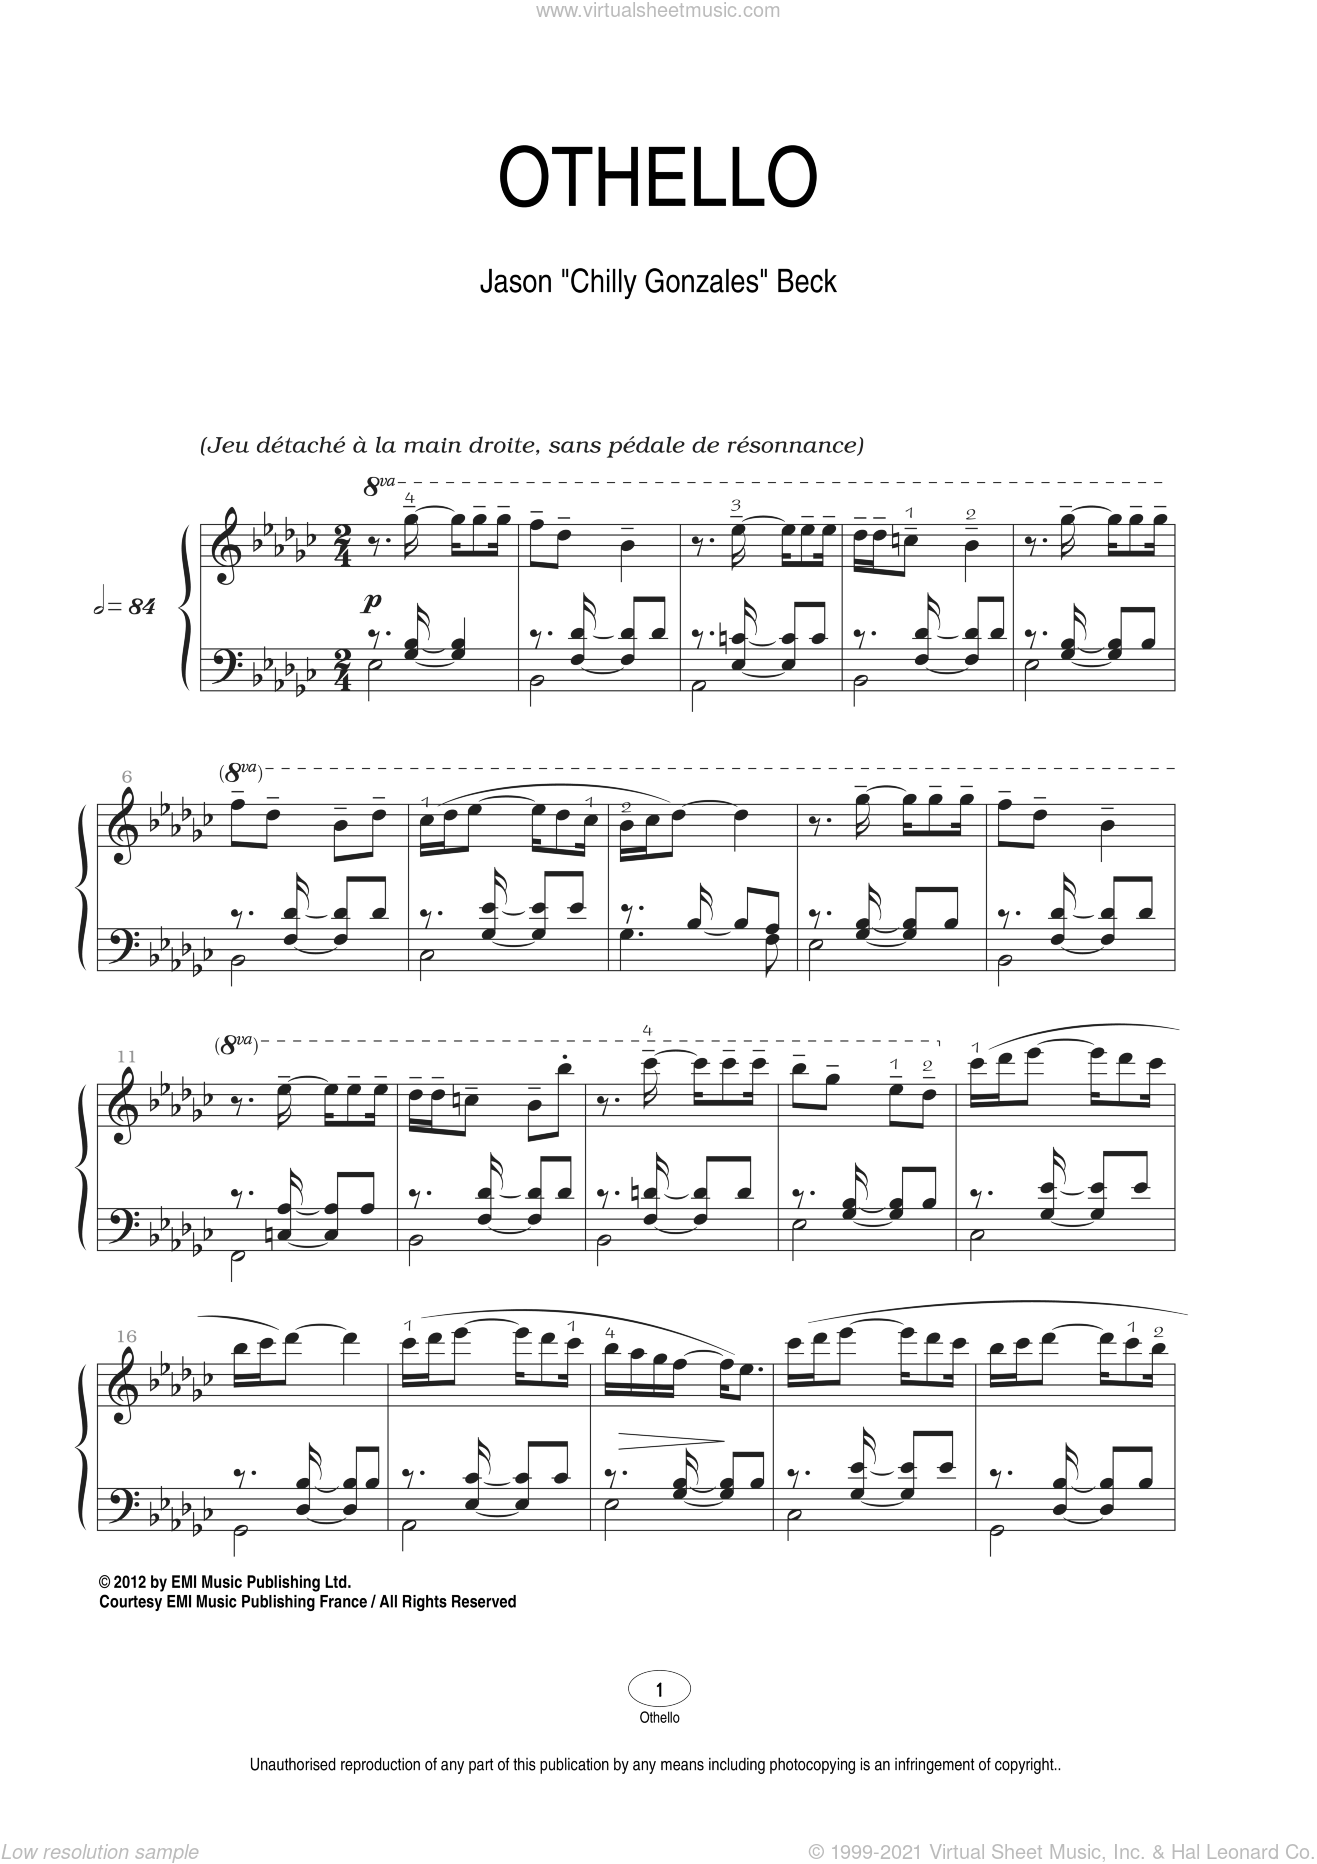 Othello sheet music for piano solo by Chilly Gonzales and Jason Beck. Score Image Preview.